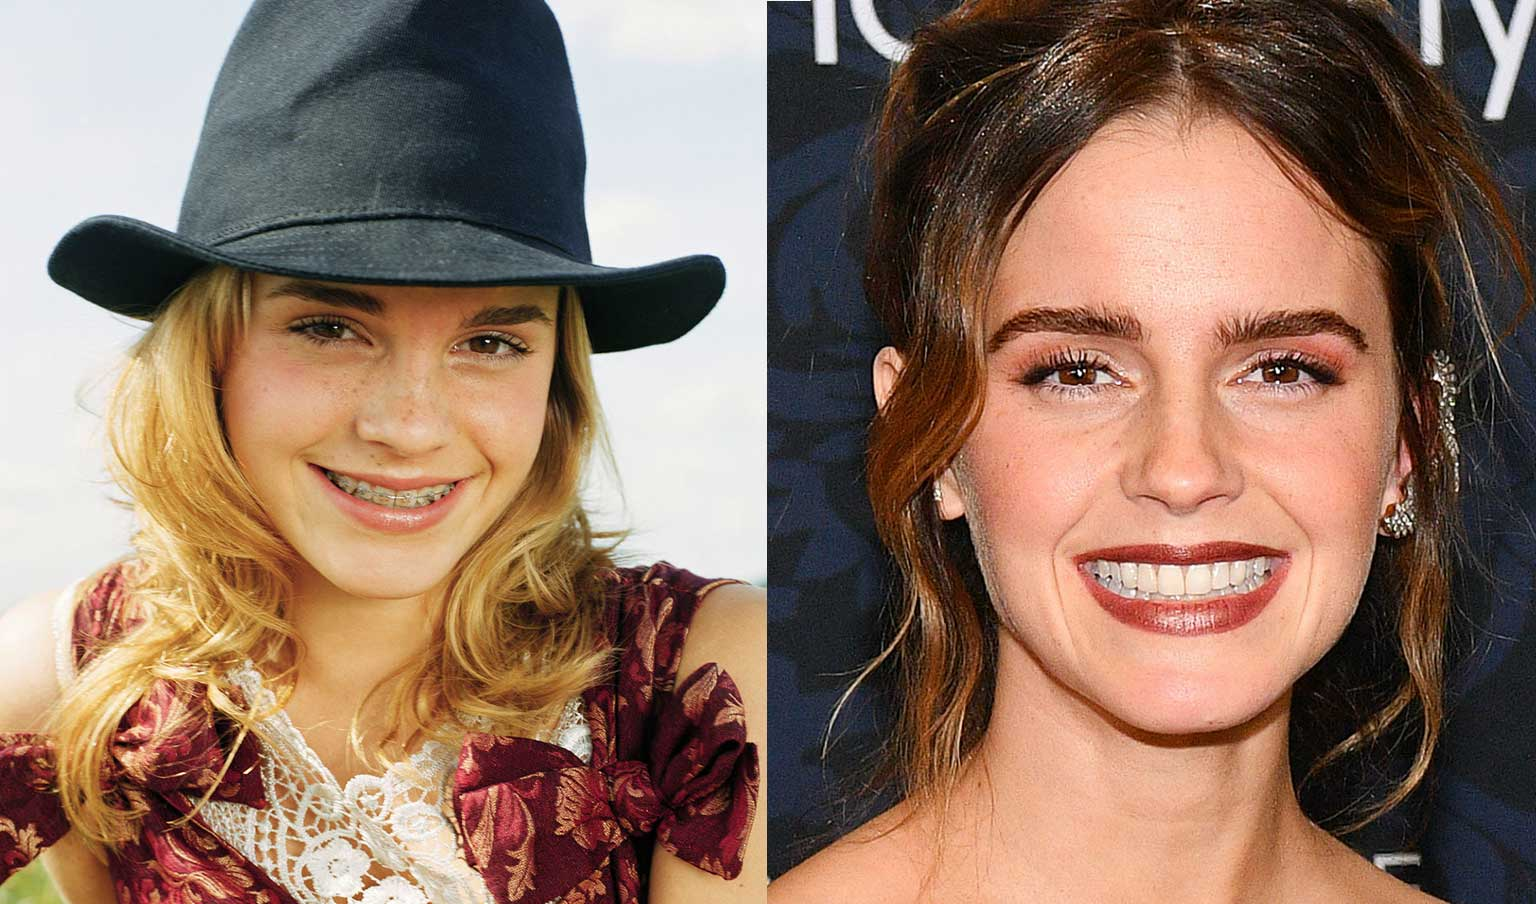 Emma Watson celebrities with braces before and after